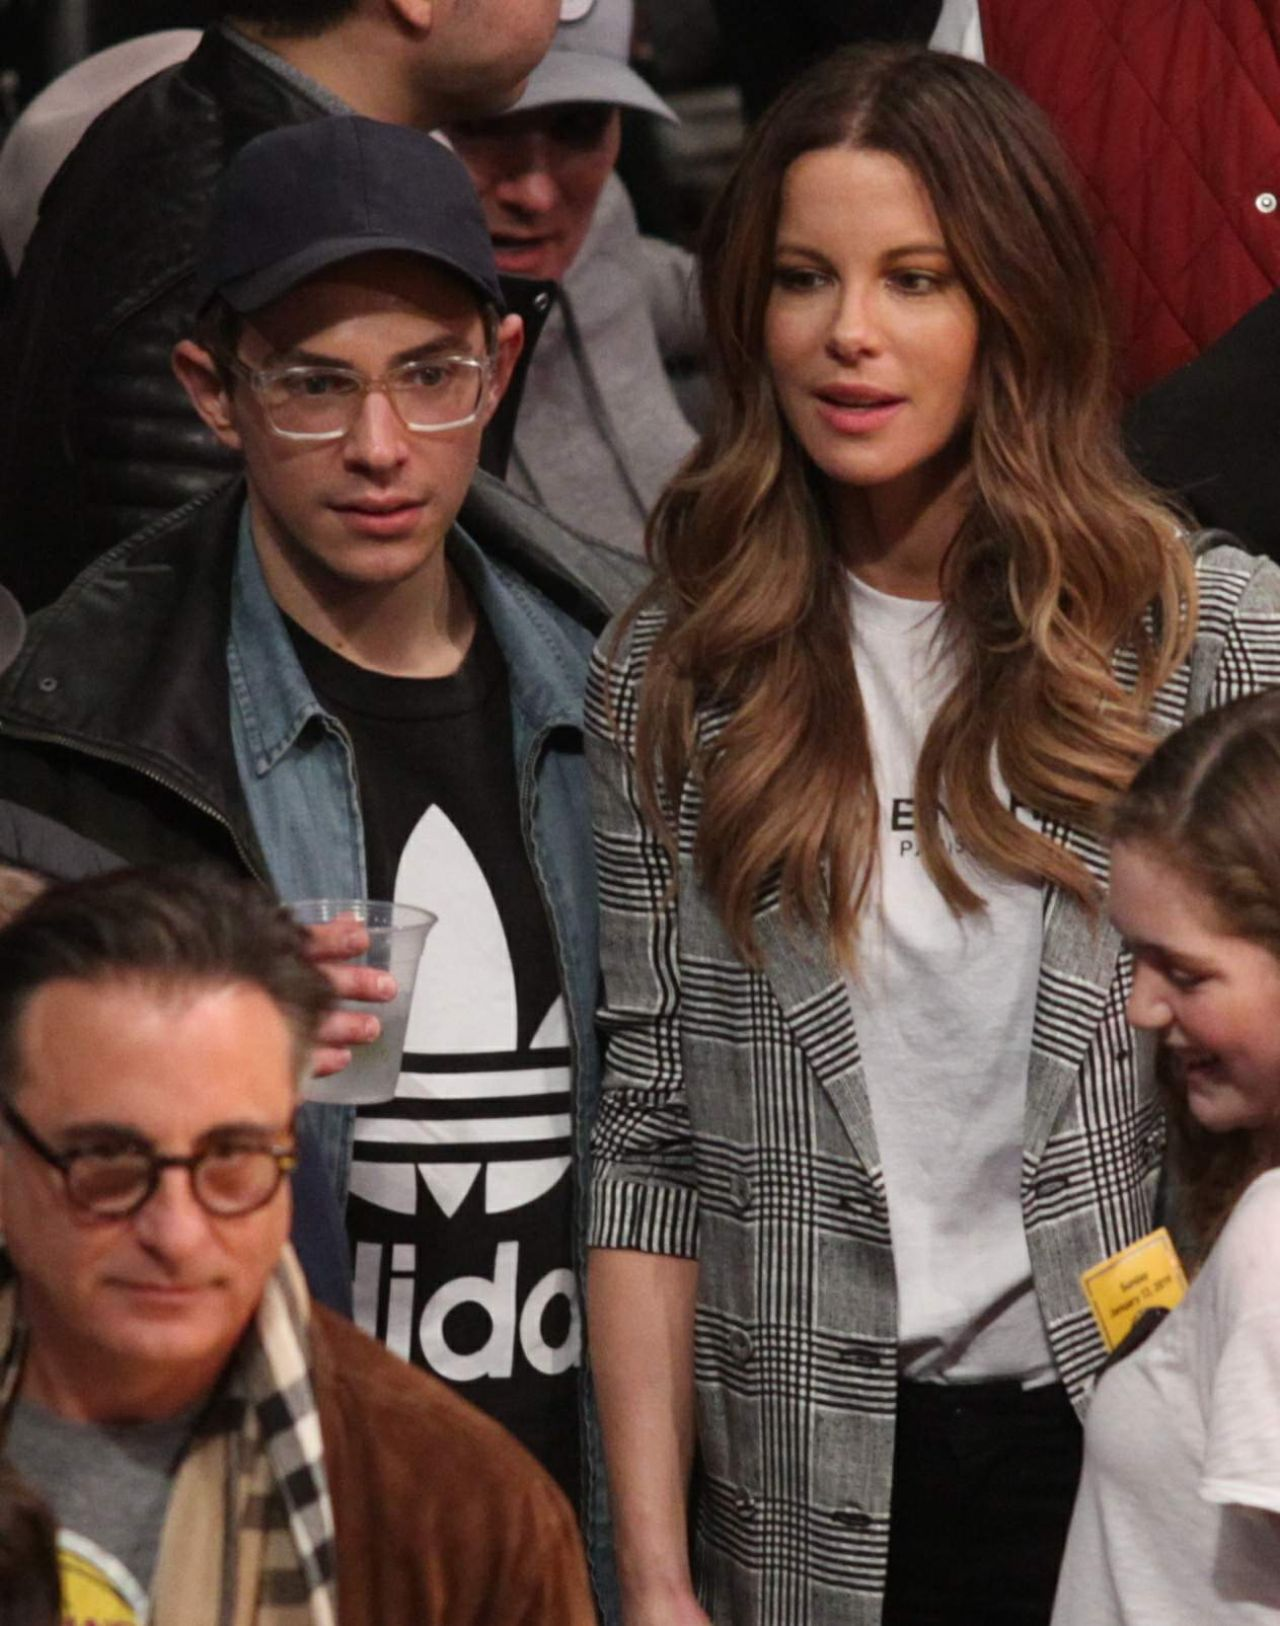 kate-beckinsale-la-lakers-vs-the-cleveland-cavaliers-game-in-la-01-13-2019-8.jpg